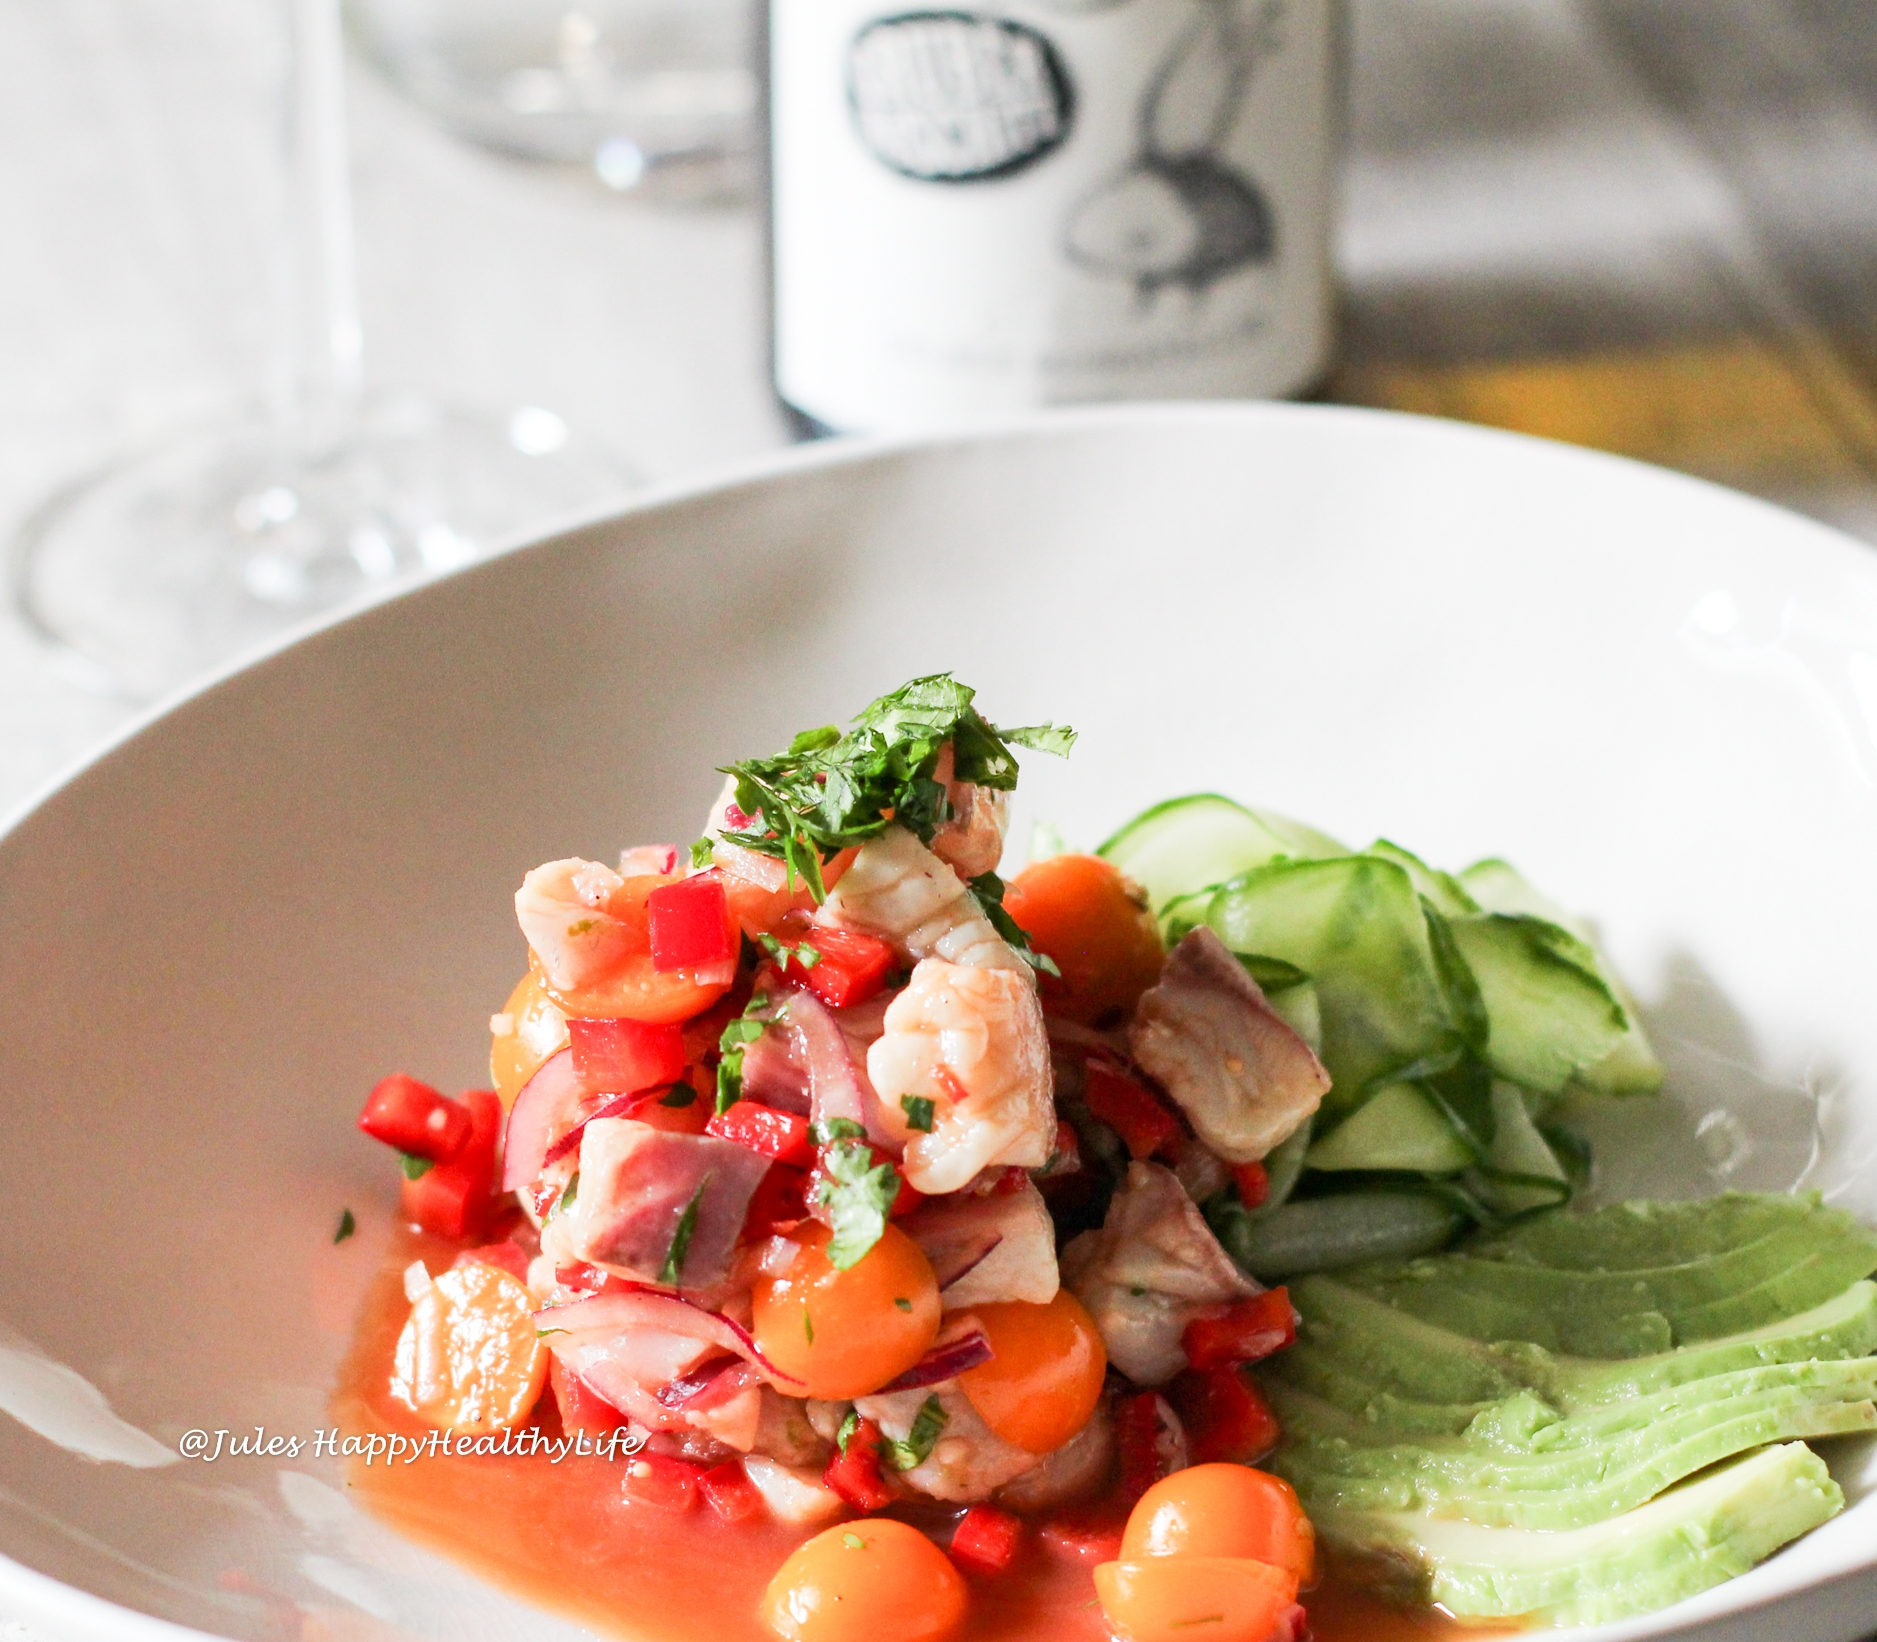 Ceviche of Gilthead and Physalis with Gelber Muskateller by Gruber Röschitz as wine accompaniment is a light summer dish